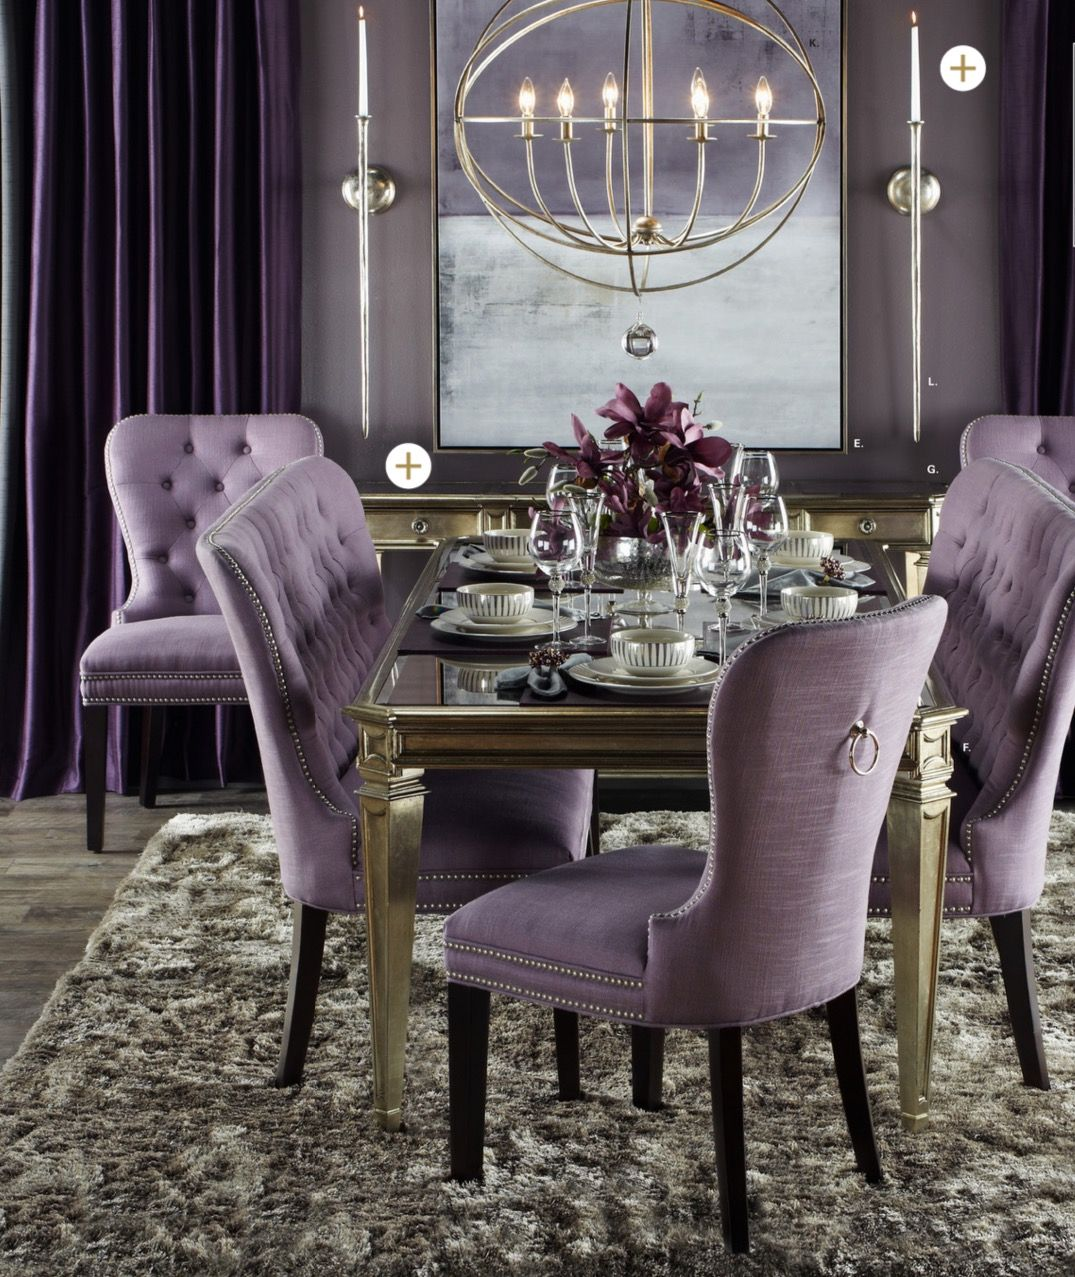 Charming And Cheap Decor Ideas Formal Dining Room: Violet, Grey, And Silver Dining Room